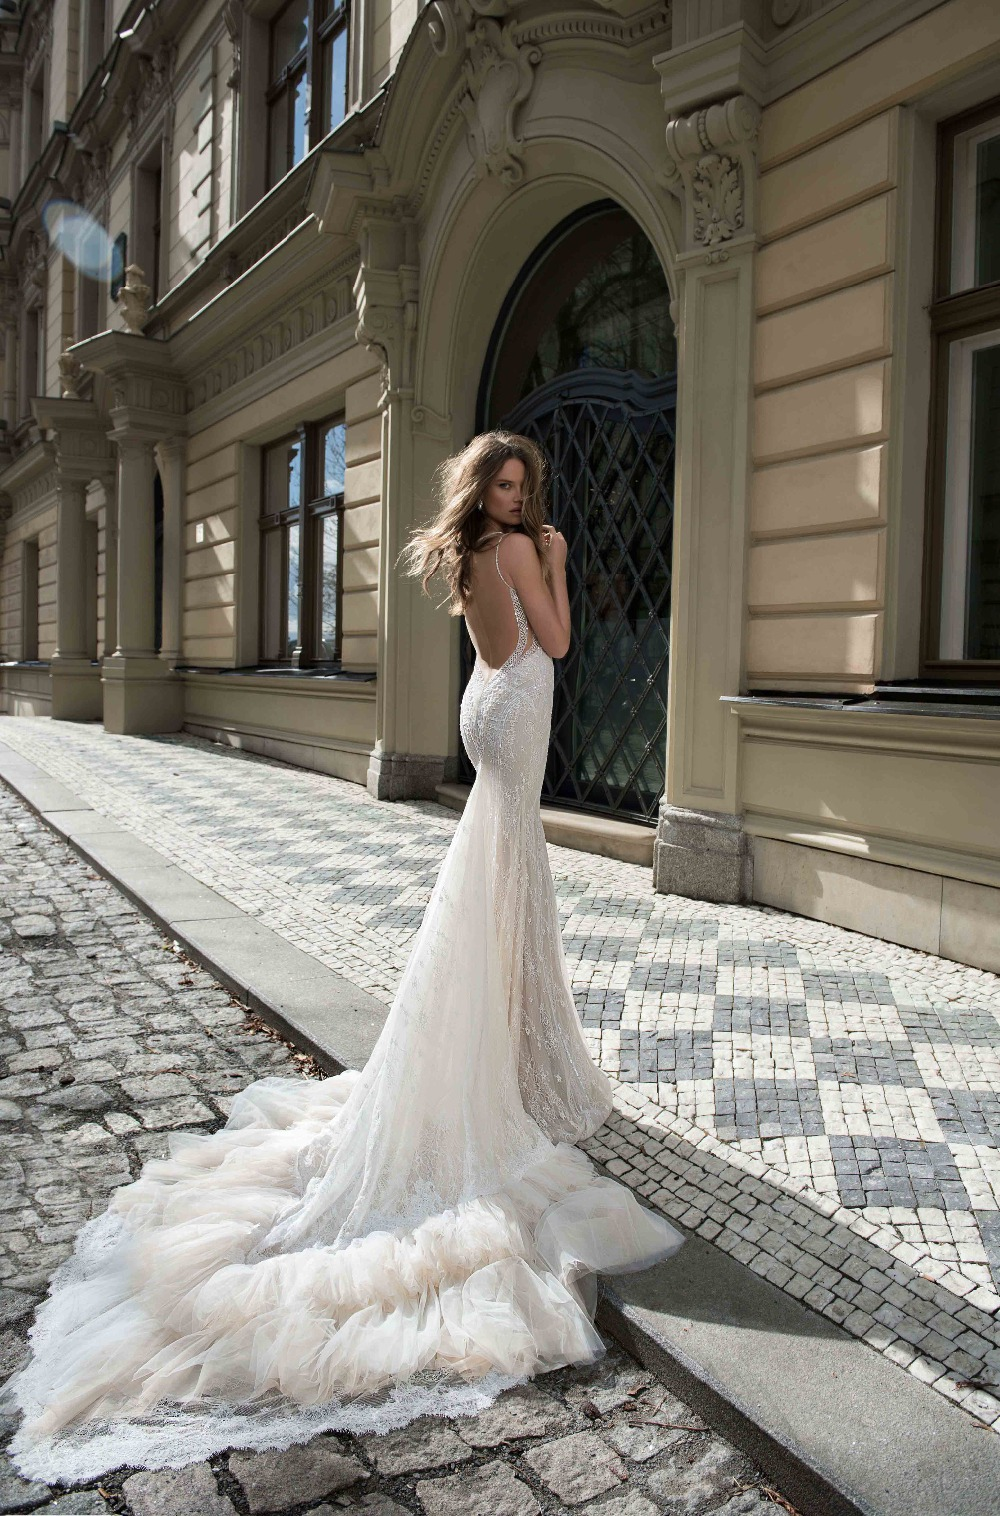 FBB-07 Bling Bling Sweetheart Neck Wedding Dress with Spaghetti Strap Dramatic Ruffle Train Alibaba Express Vestido De Fiesta